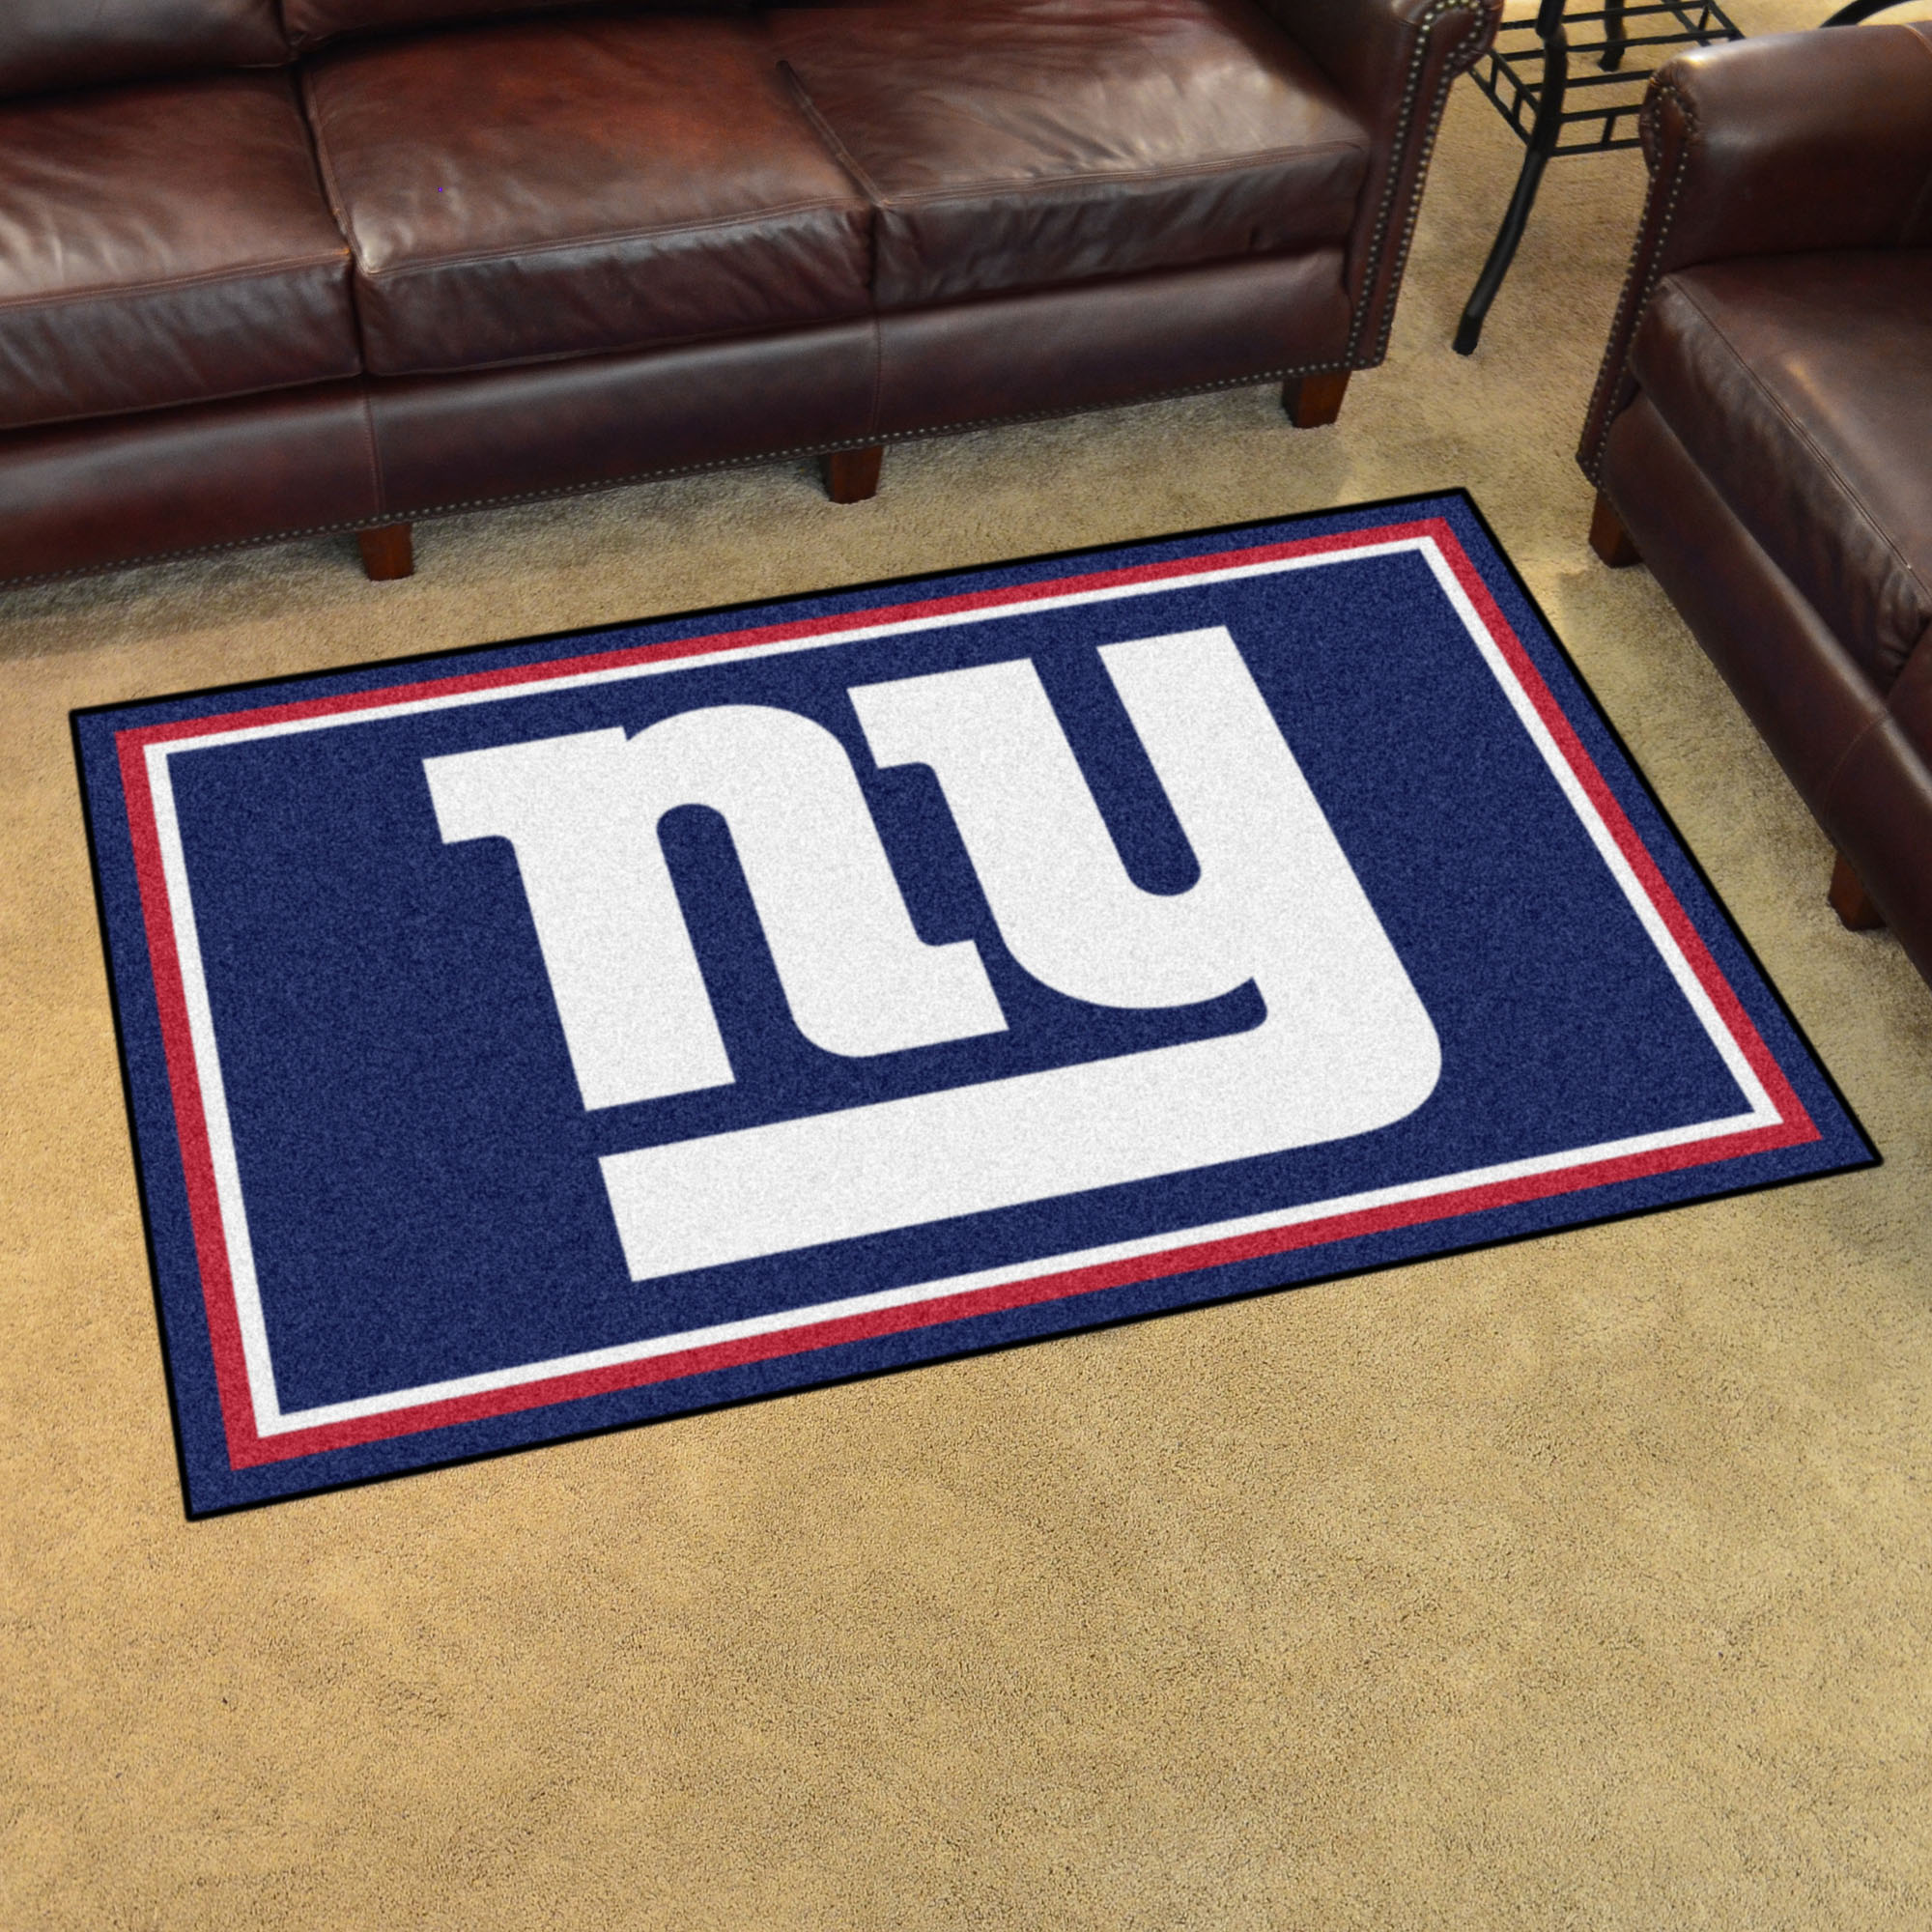 New york giants 4x6 area rug buy at khc sports for Area rugs new york